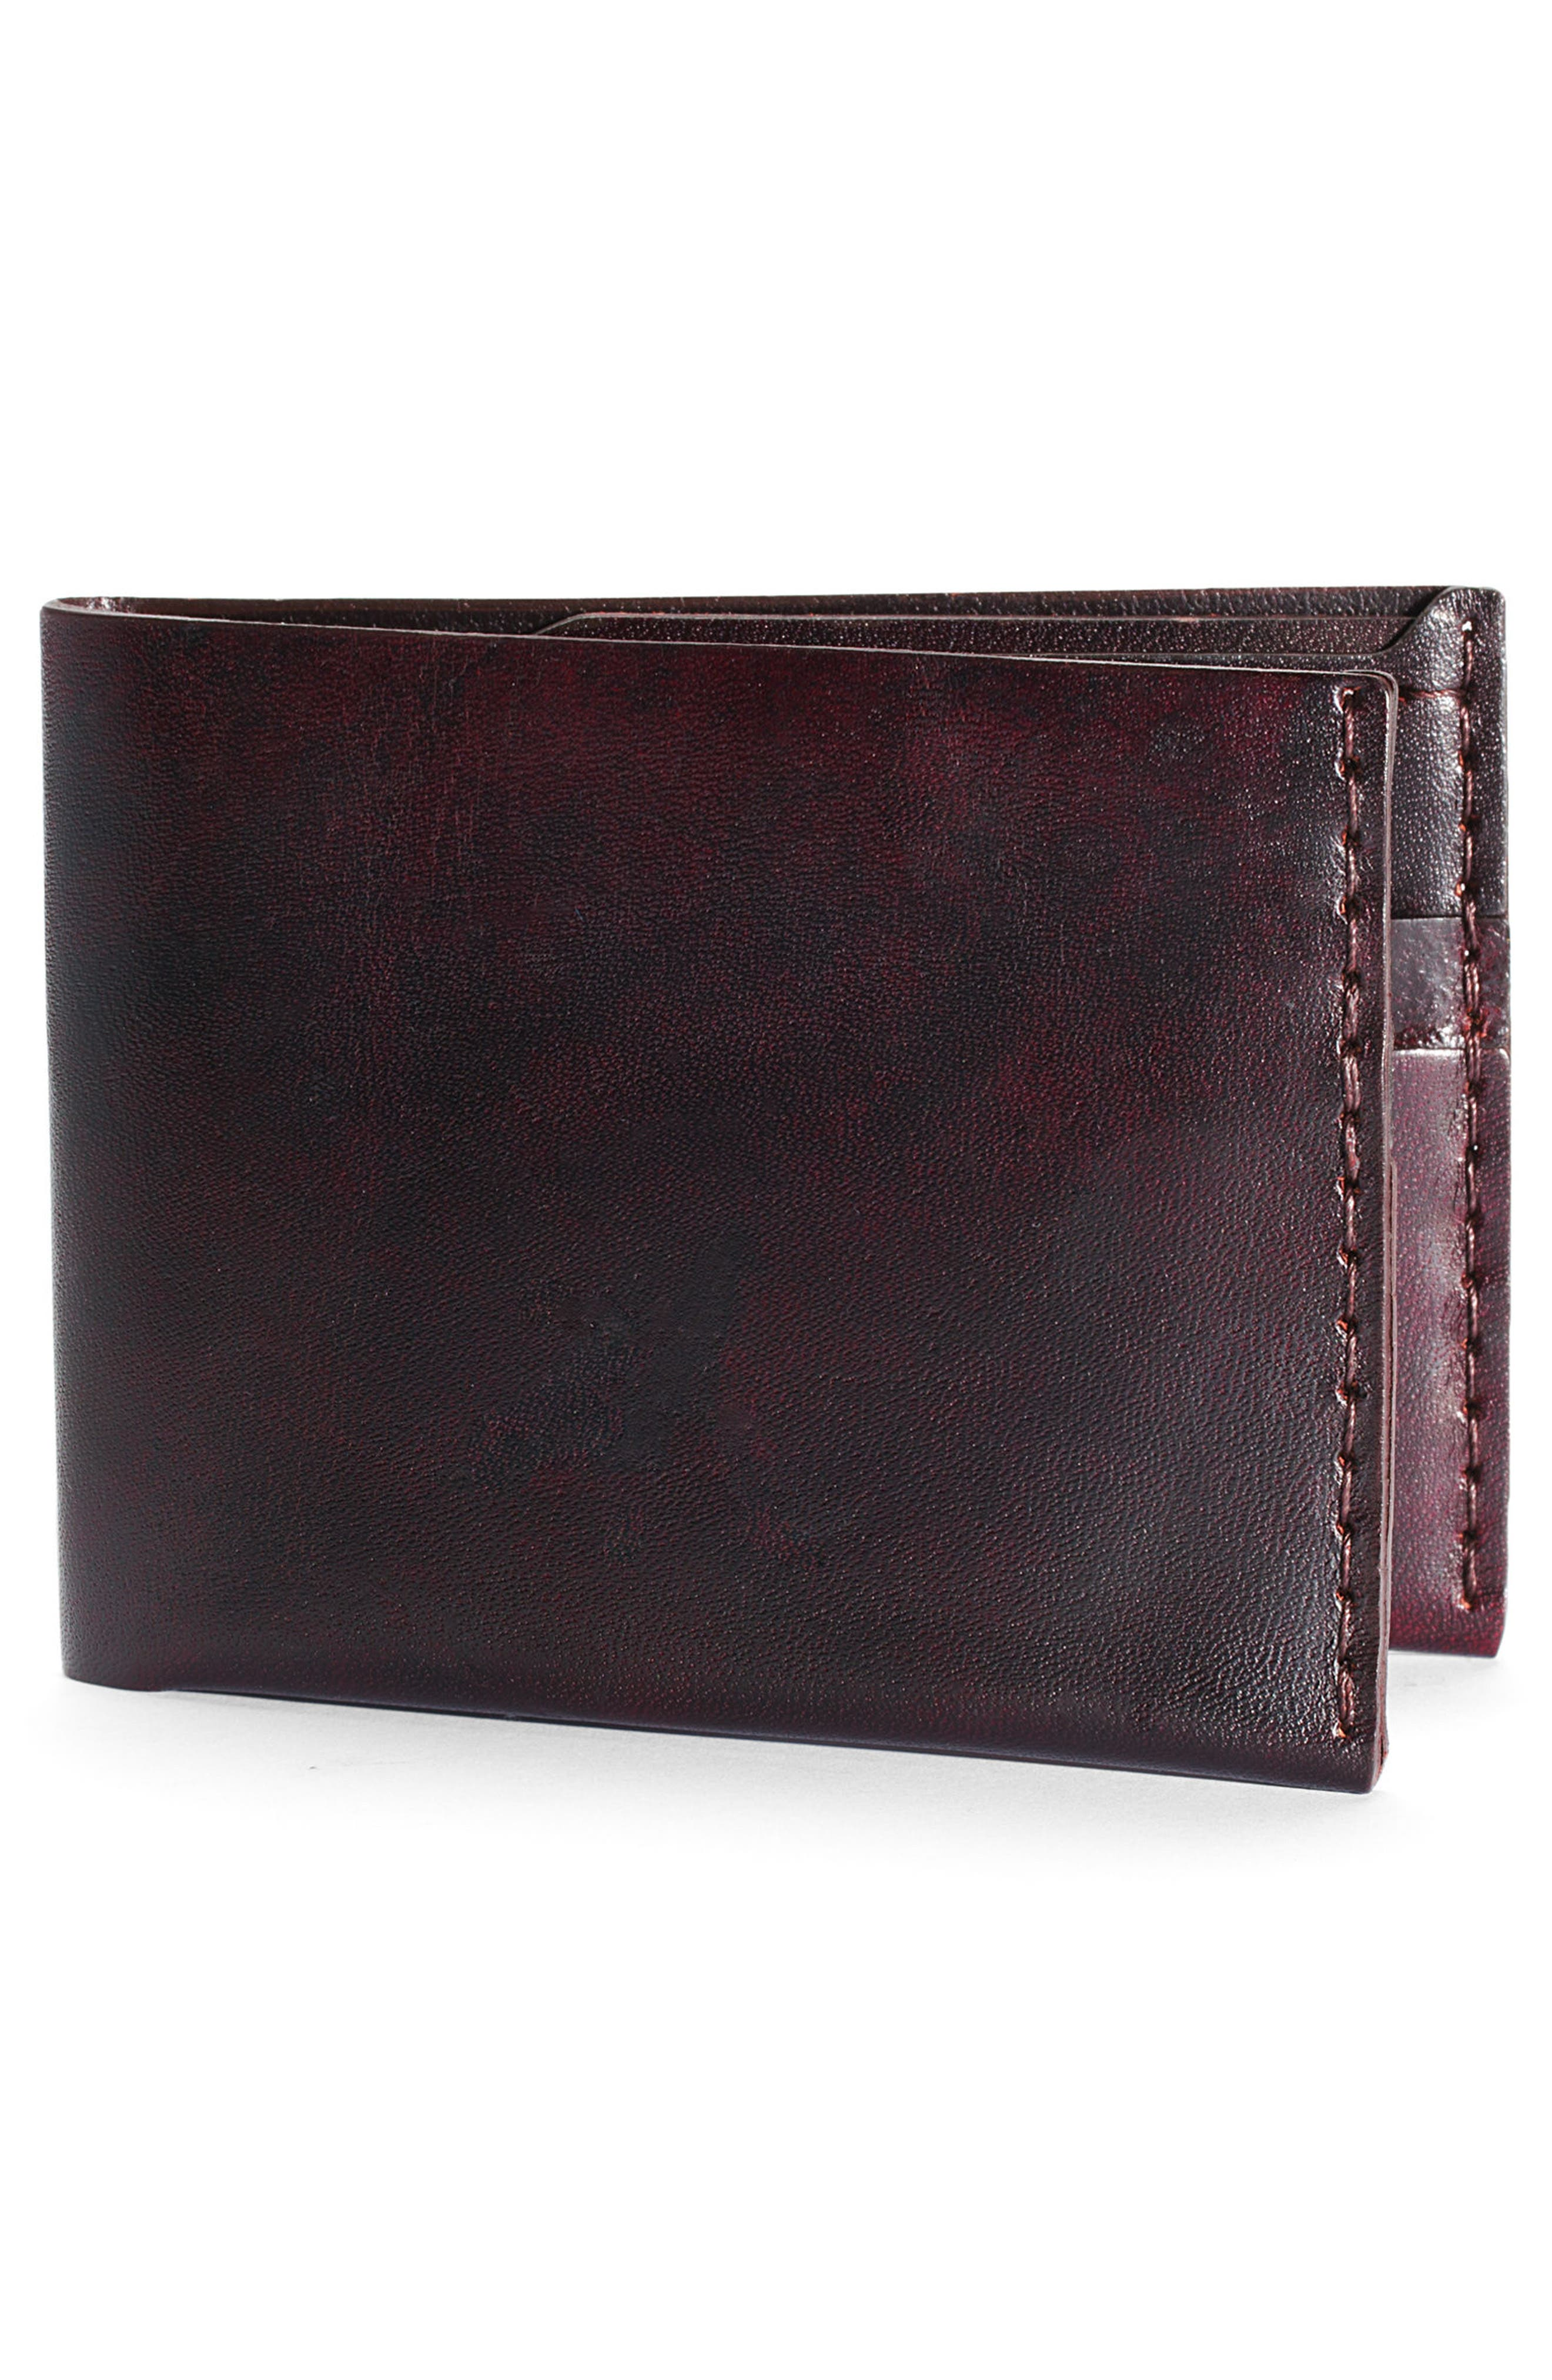 No. 6 Leather Wallet,                             Alternate thumbnail 2, color,                             Malbec